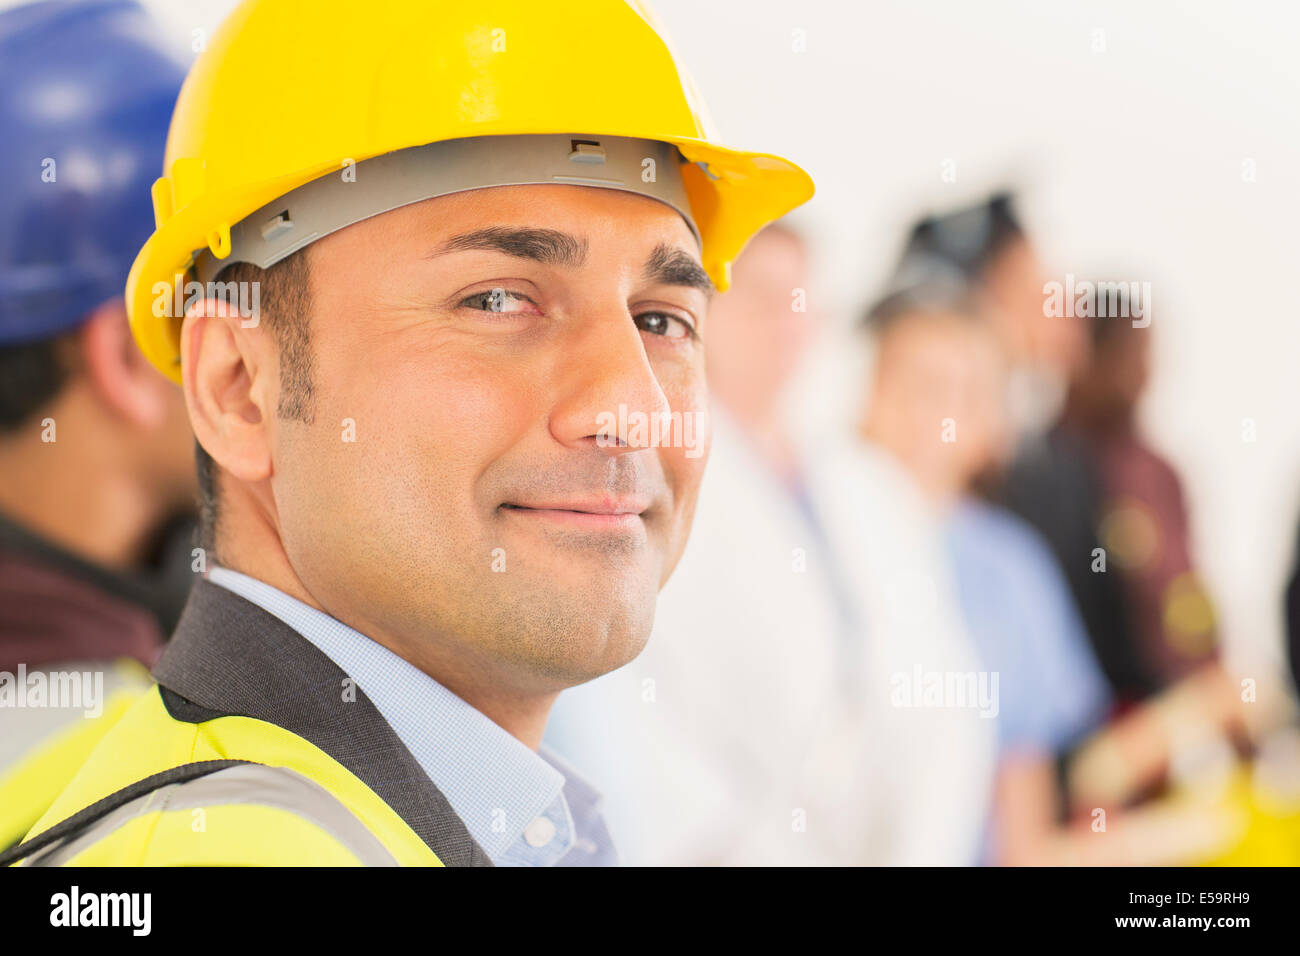 Young construction worker Photo Stock